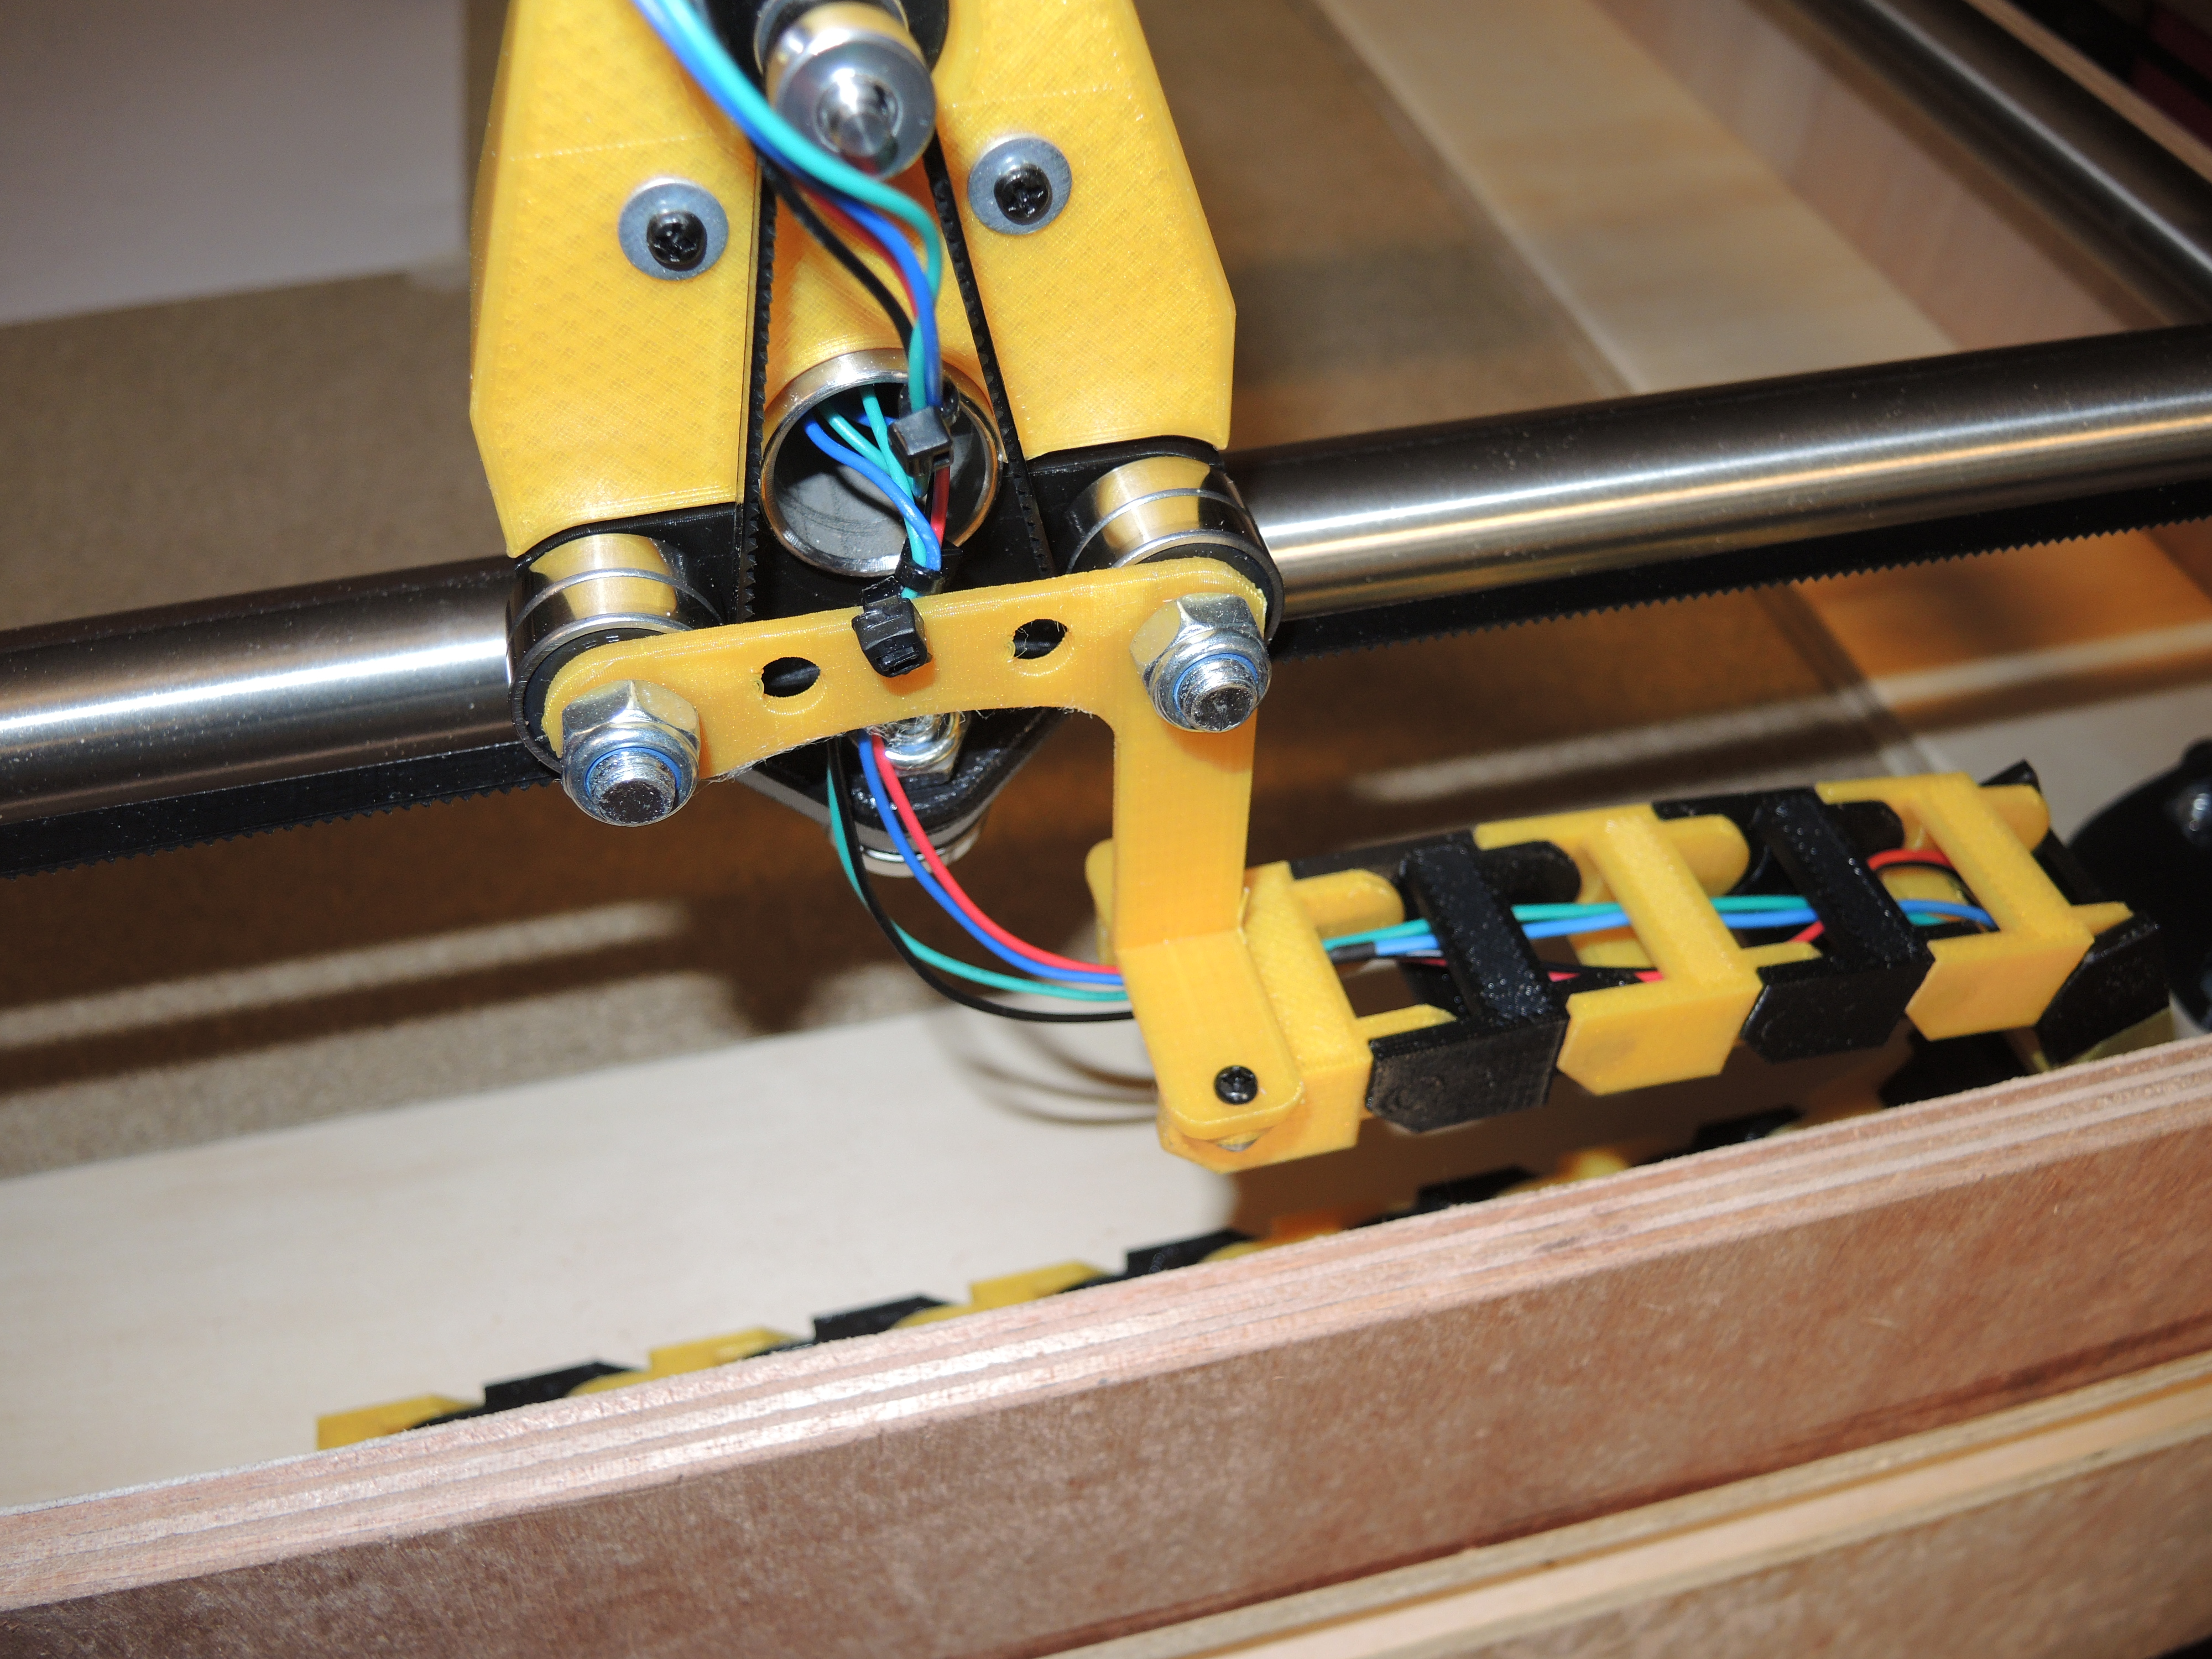 Drag Chain attachments for MPCNC by Ralf - Thingiverse